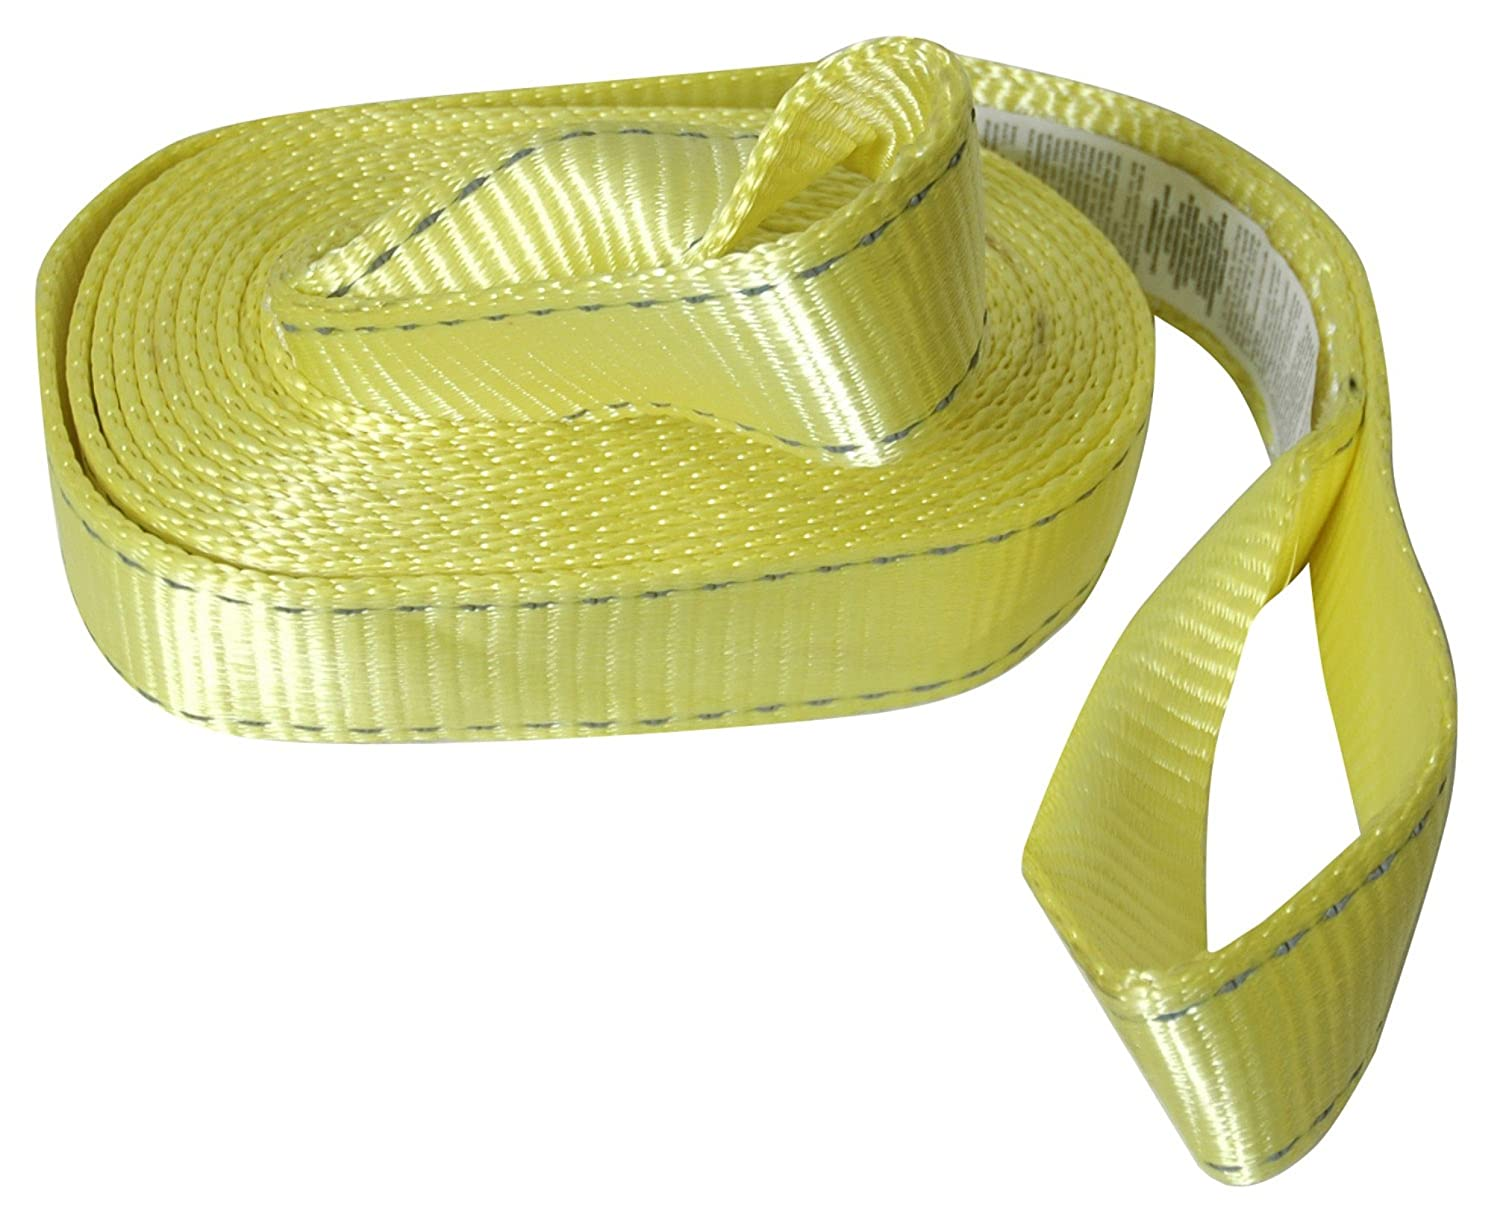 Reese Secure 9426400 20 Reflective Tow Strap with Loop Ends